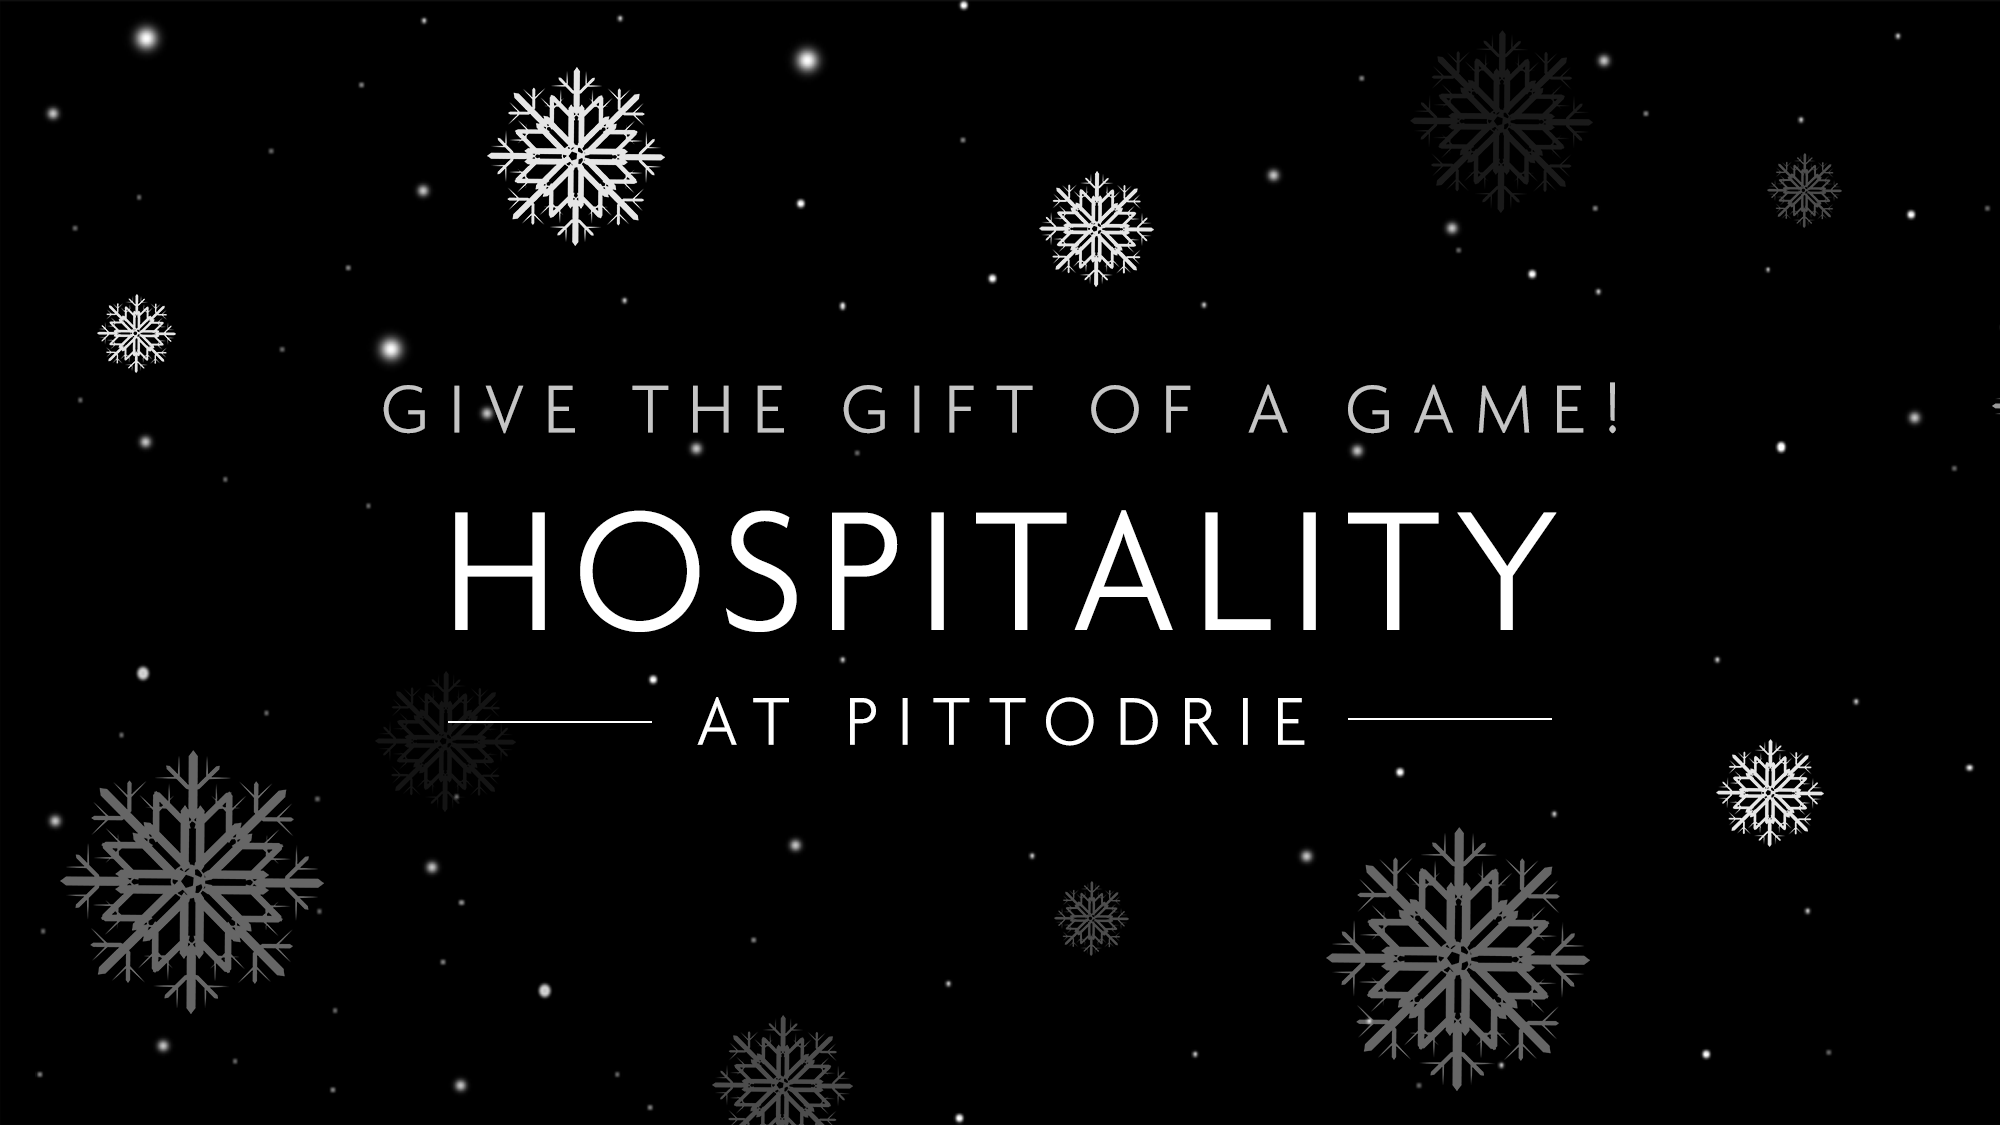 Give the gift of hospitality